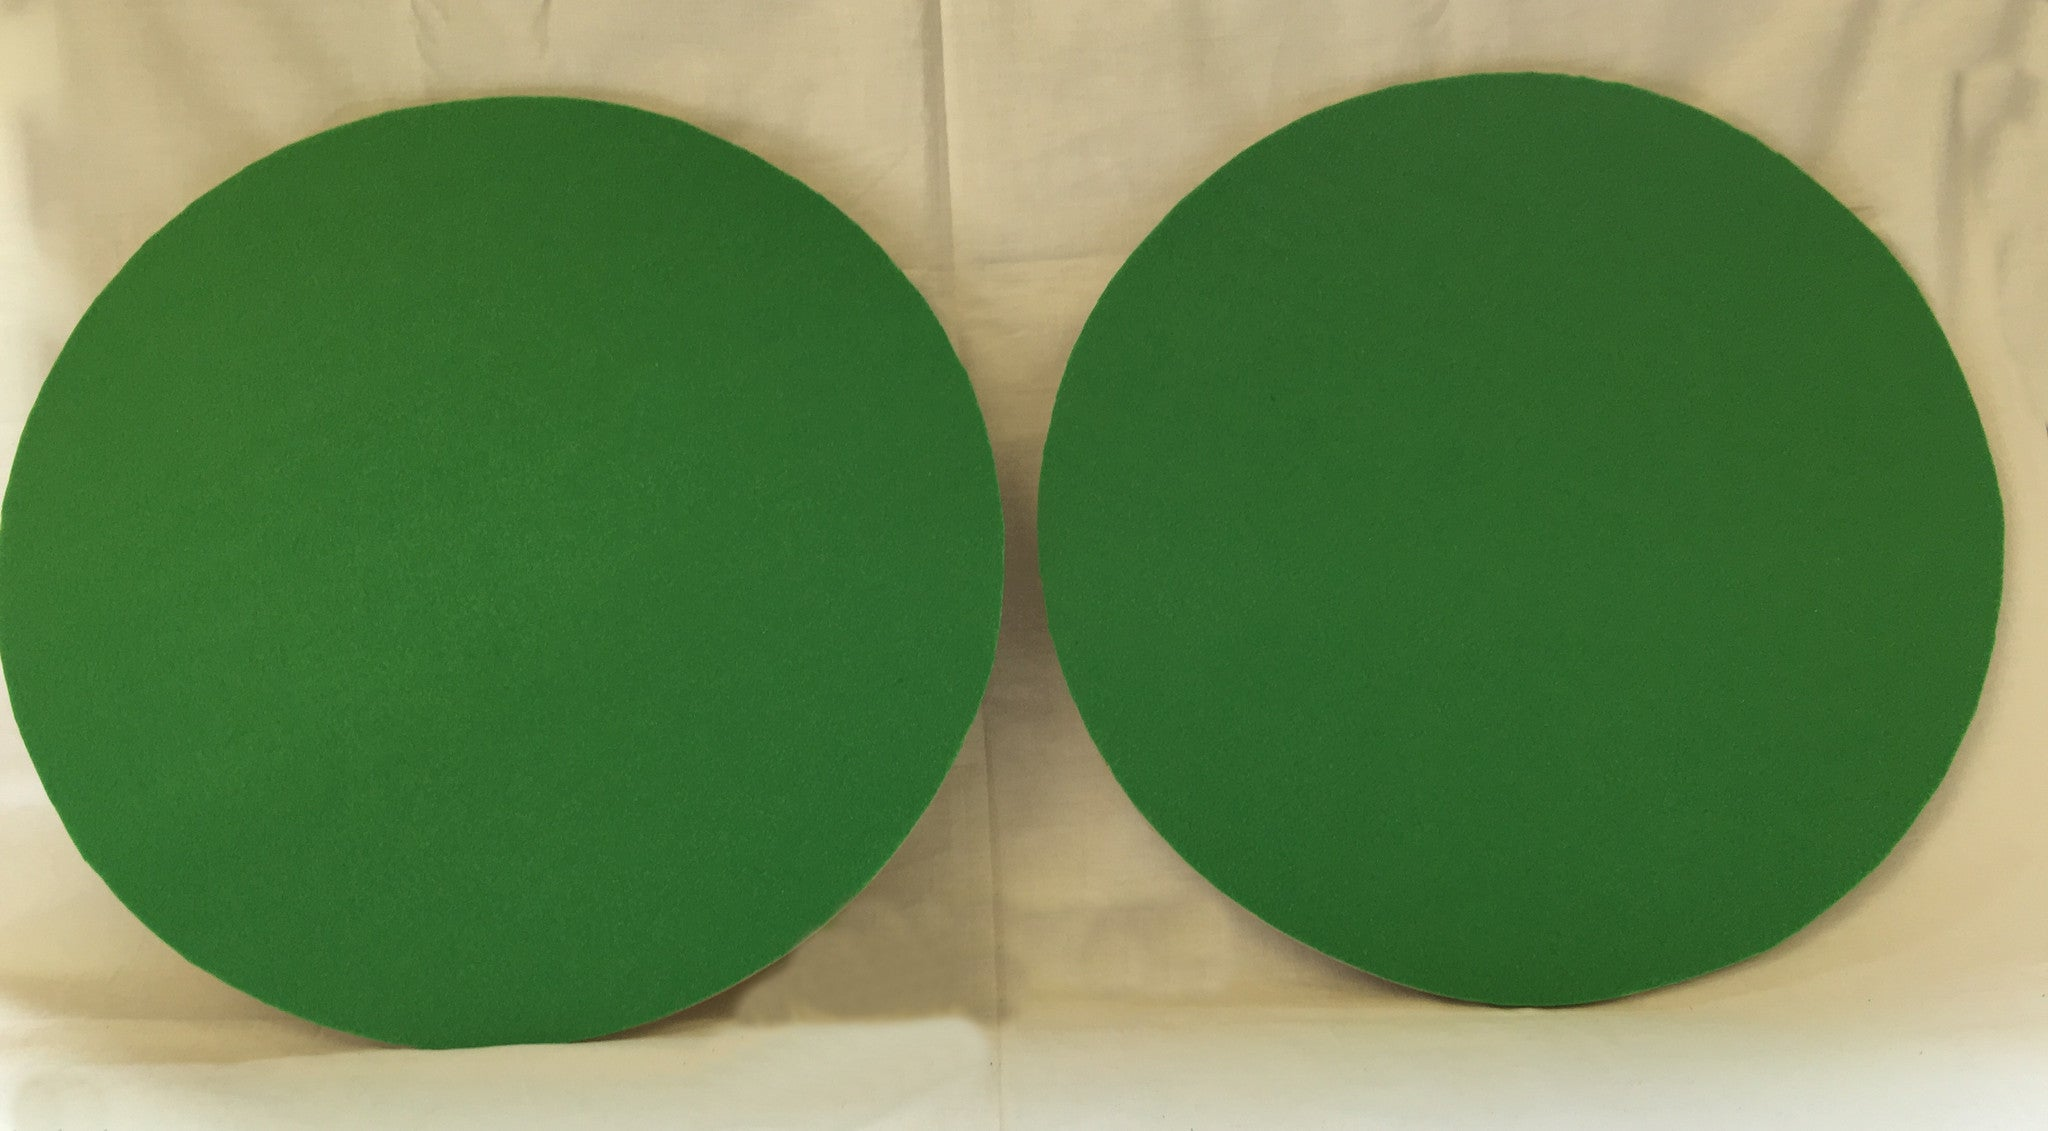 S10C - 2 Plywood Circles with Green Felt Covering